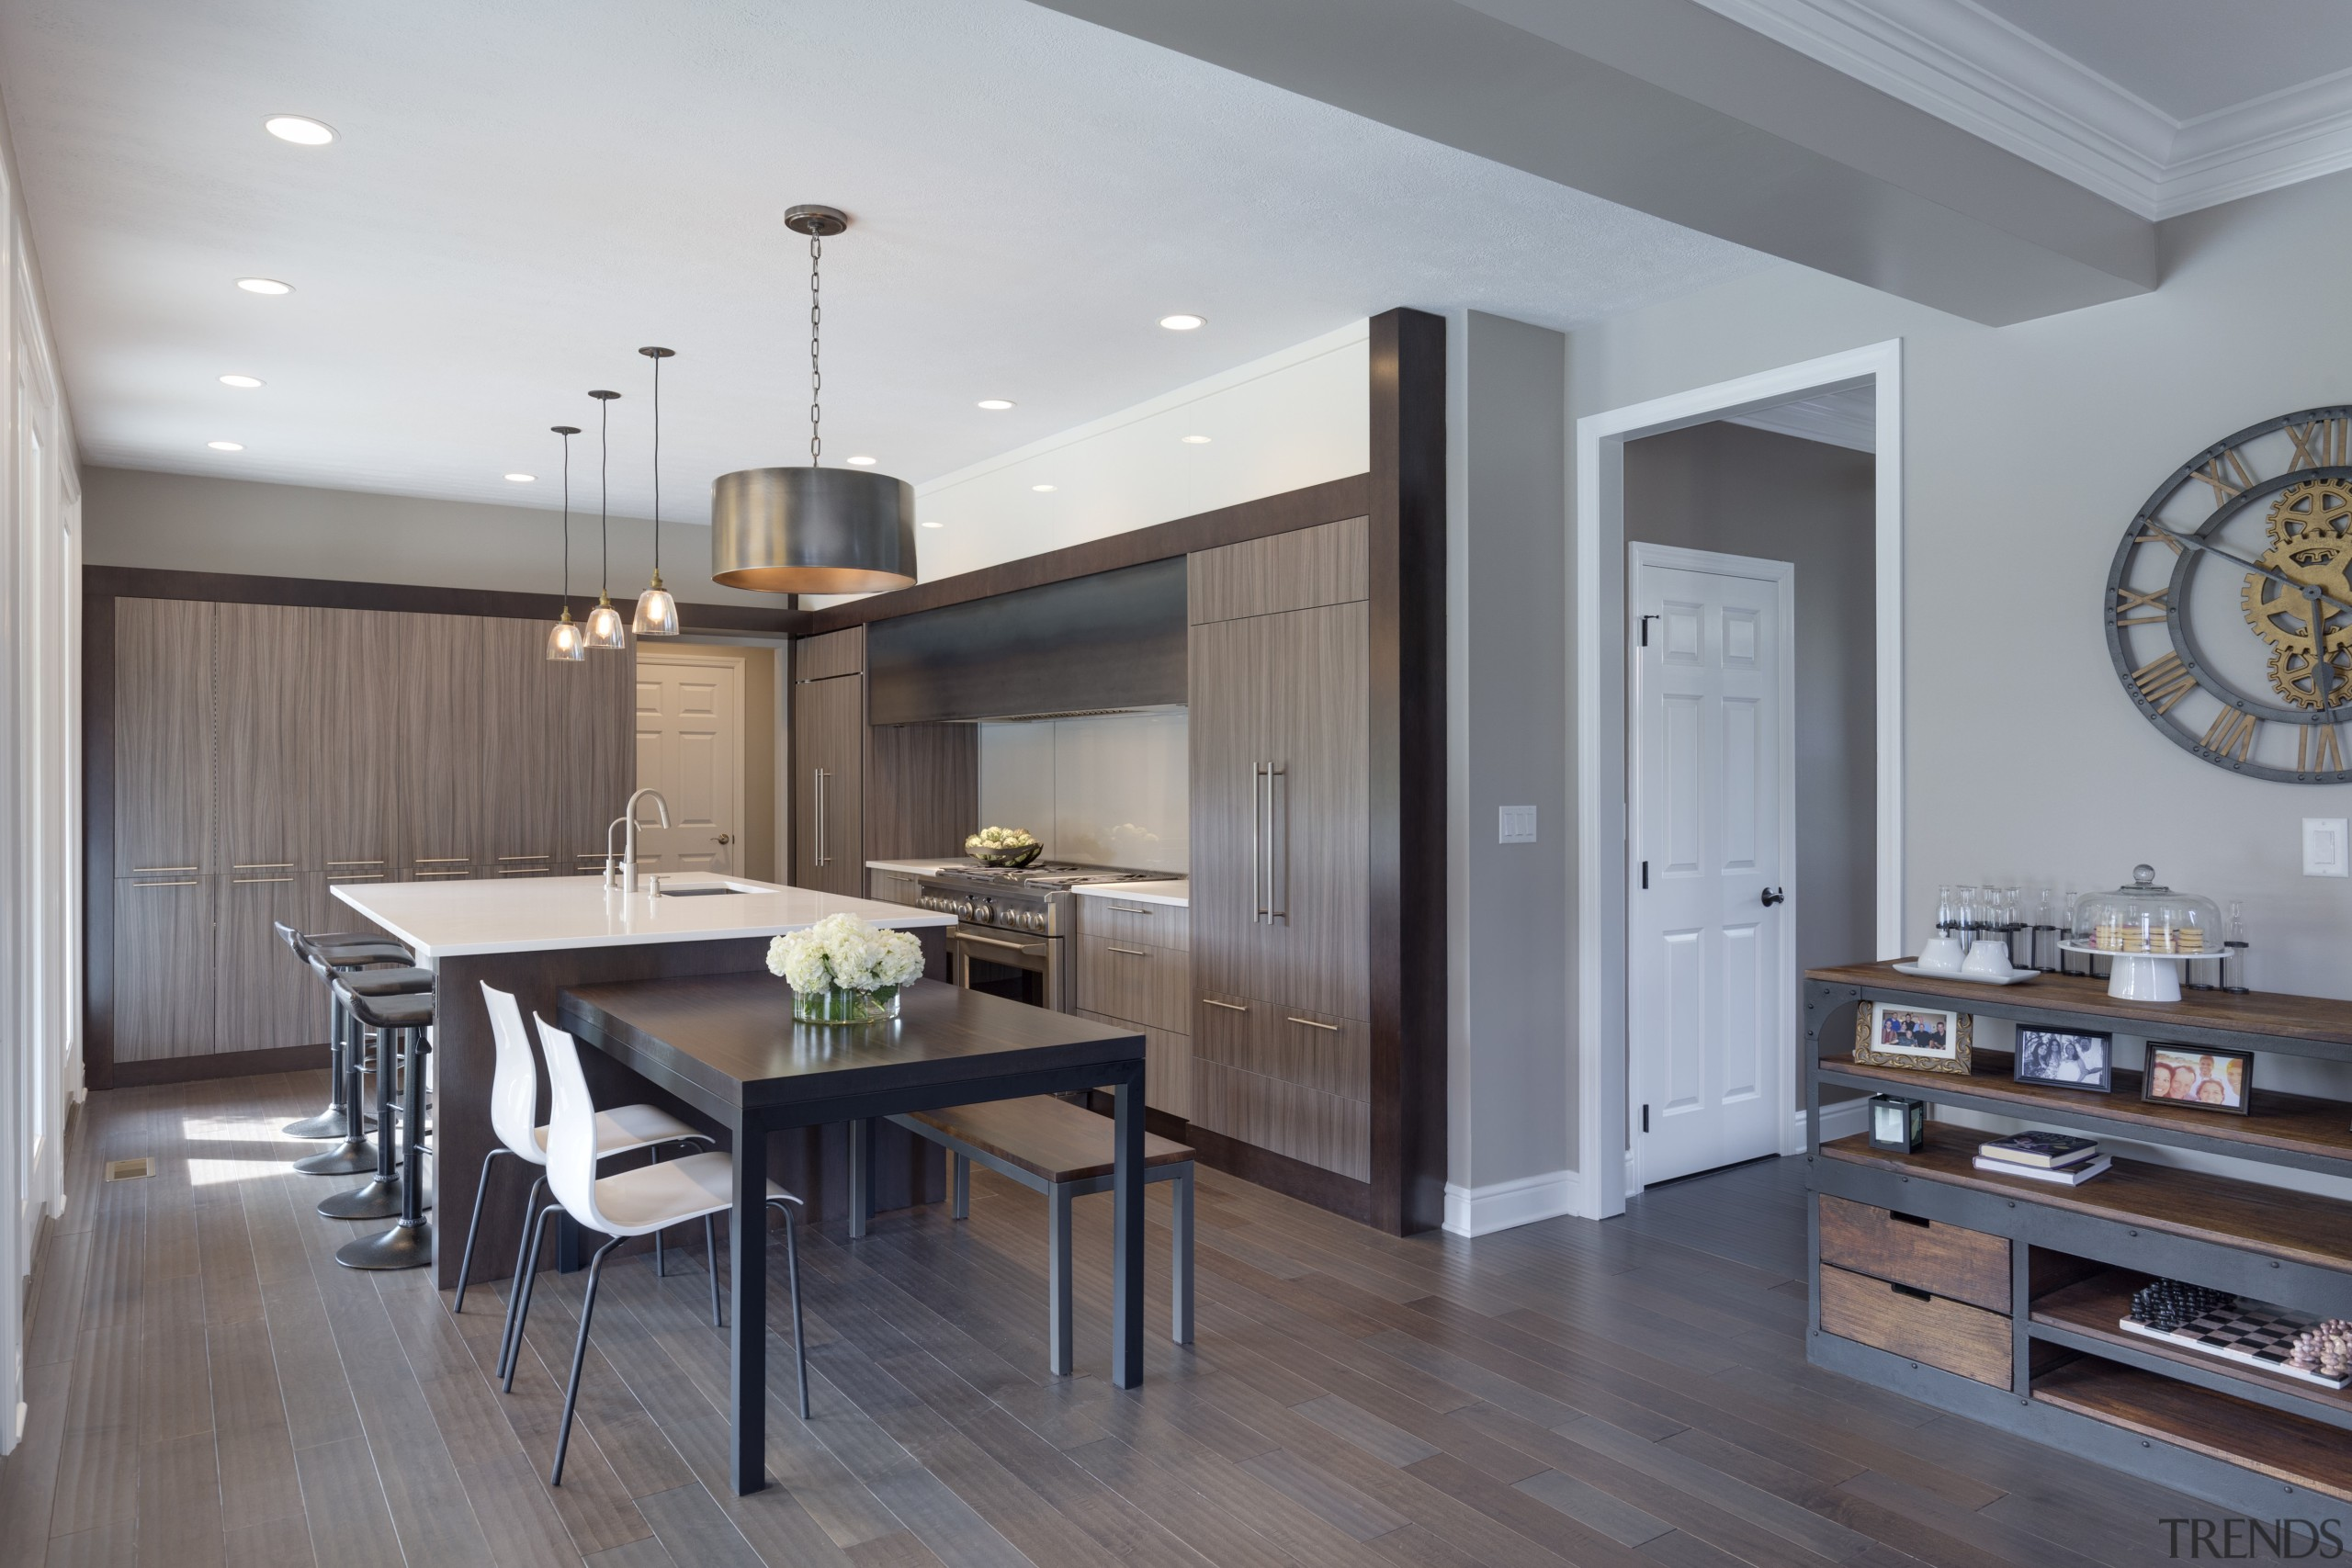 This wood-look kitchen works well with its greater cabinetry, countertop, cuisine classique, floor, flooring, hardwood, interior design, kitchen, laminate flooring, real estate, room, wood flooring, gray